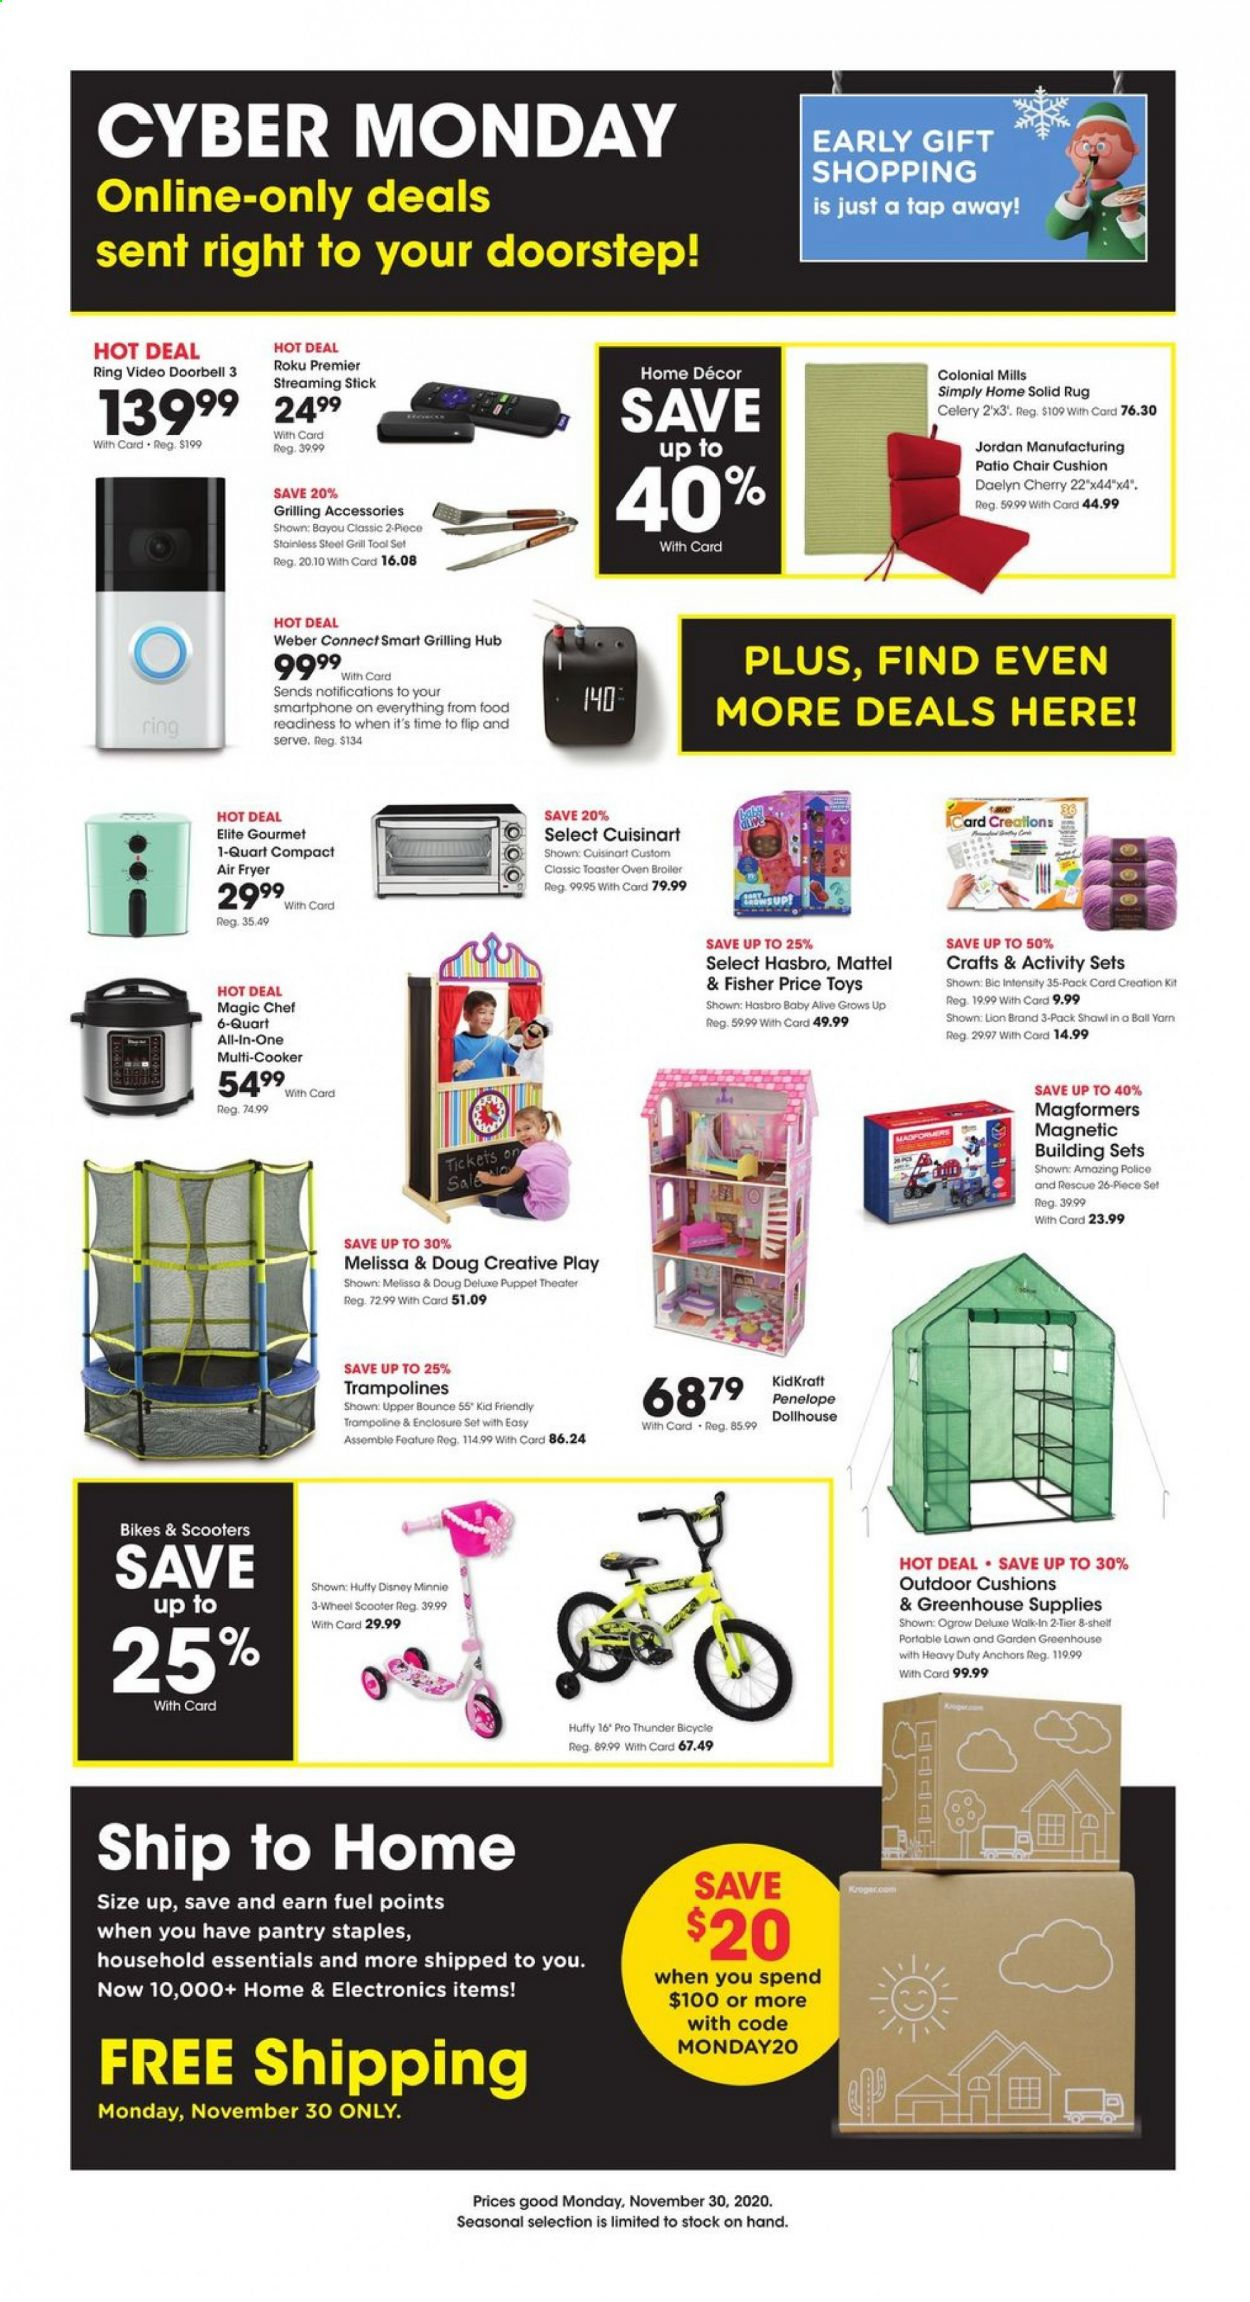 Baker's Flyer - 11.30.2020 - 11.30.2020 - Sales products - BIC, bike, celery, cushion, Disney, doorbell, fryer, fuel, greenhouse, grill, Mattel, rug, scooter, shelf, solid, trampoline, weber, chair, Patio, oven, hasbro, toys, air fryer, toaster, minnie, smartphone, tool set, all-in-one, Jordan, tools, disney minnie, essentials, heavy duty, KidKraft, Magformers. Page 1.